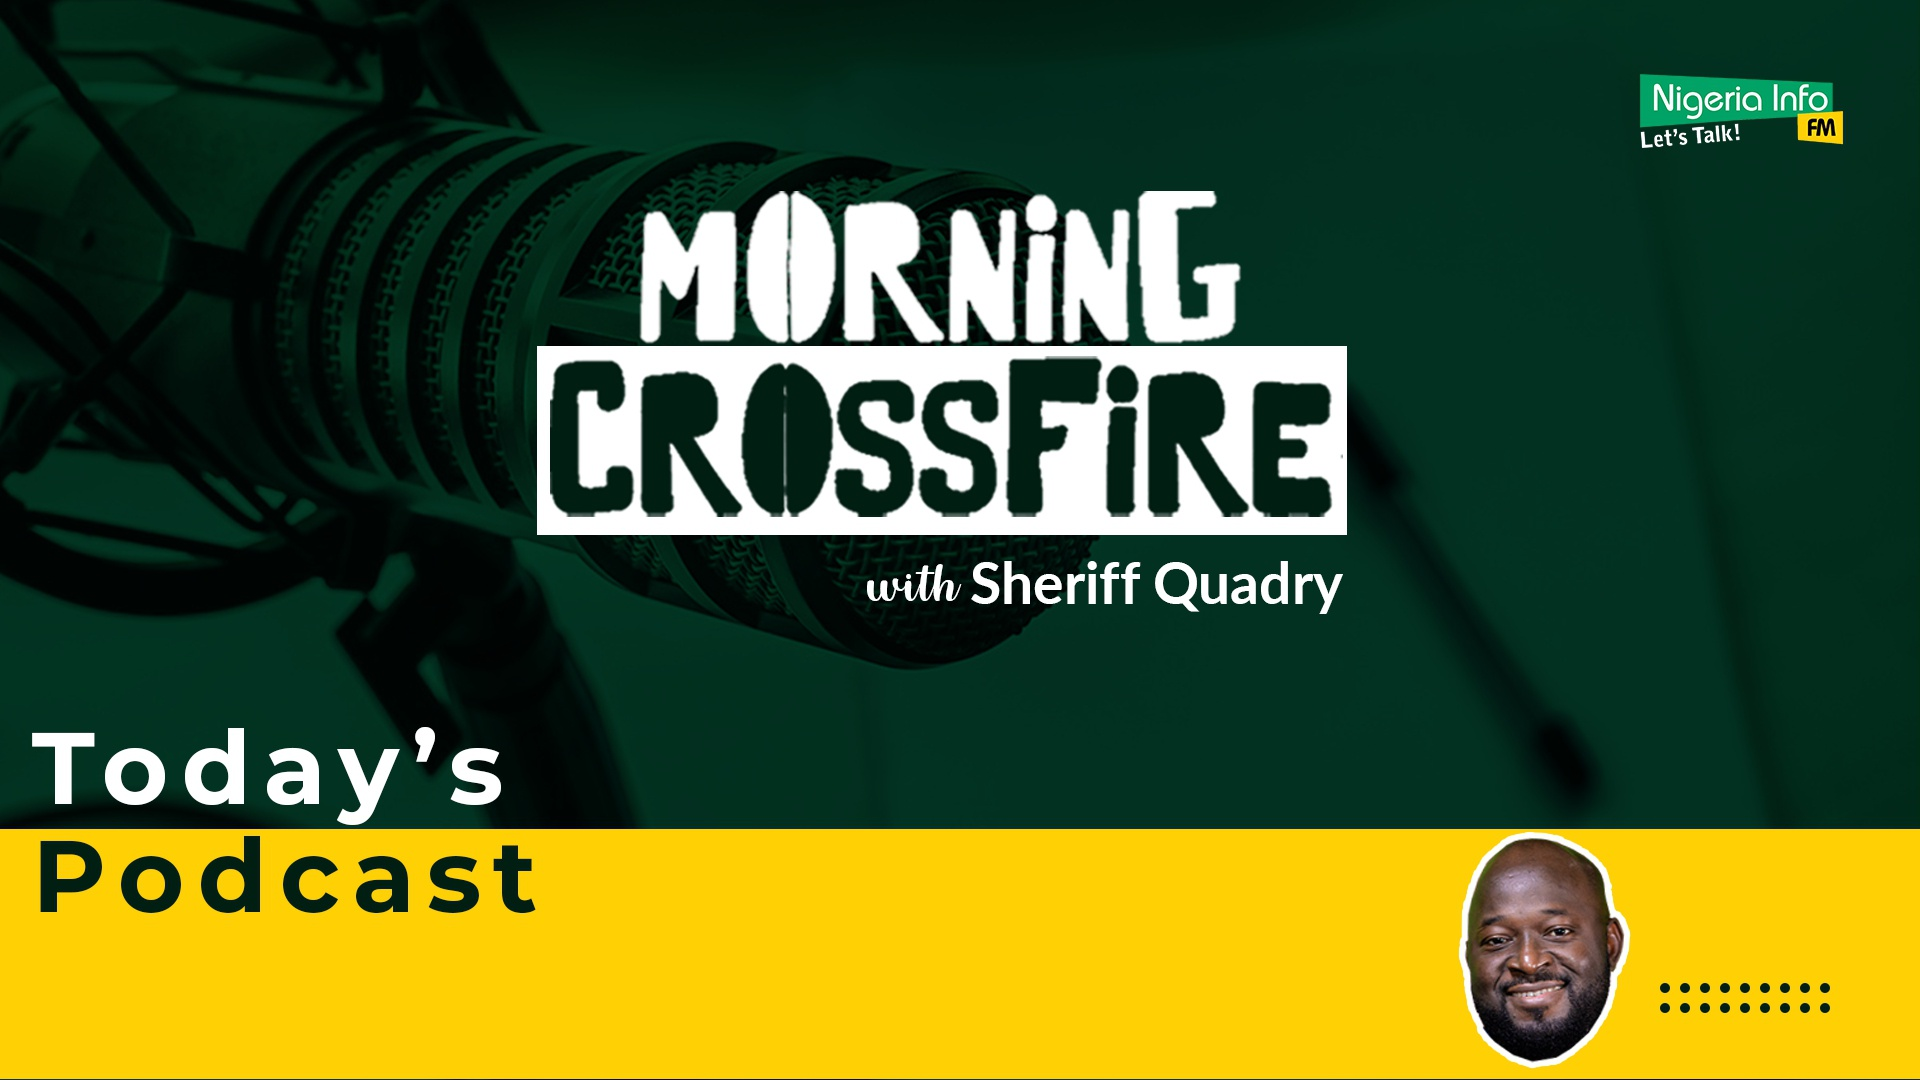 Morning Crossfire With Sheriff Quadry